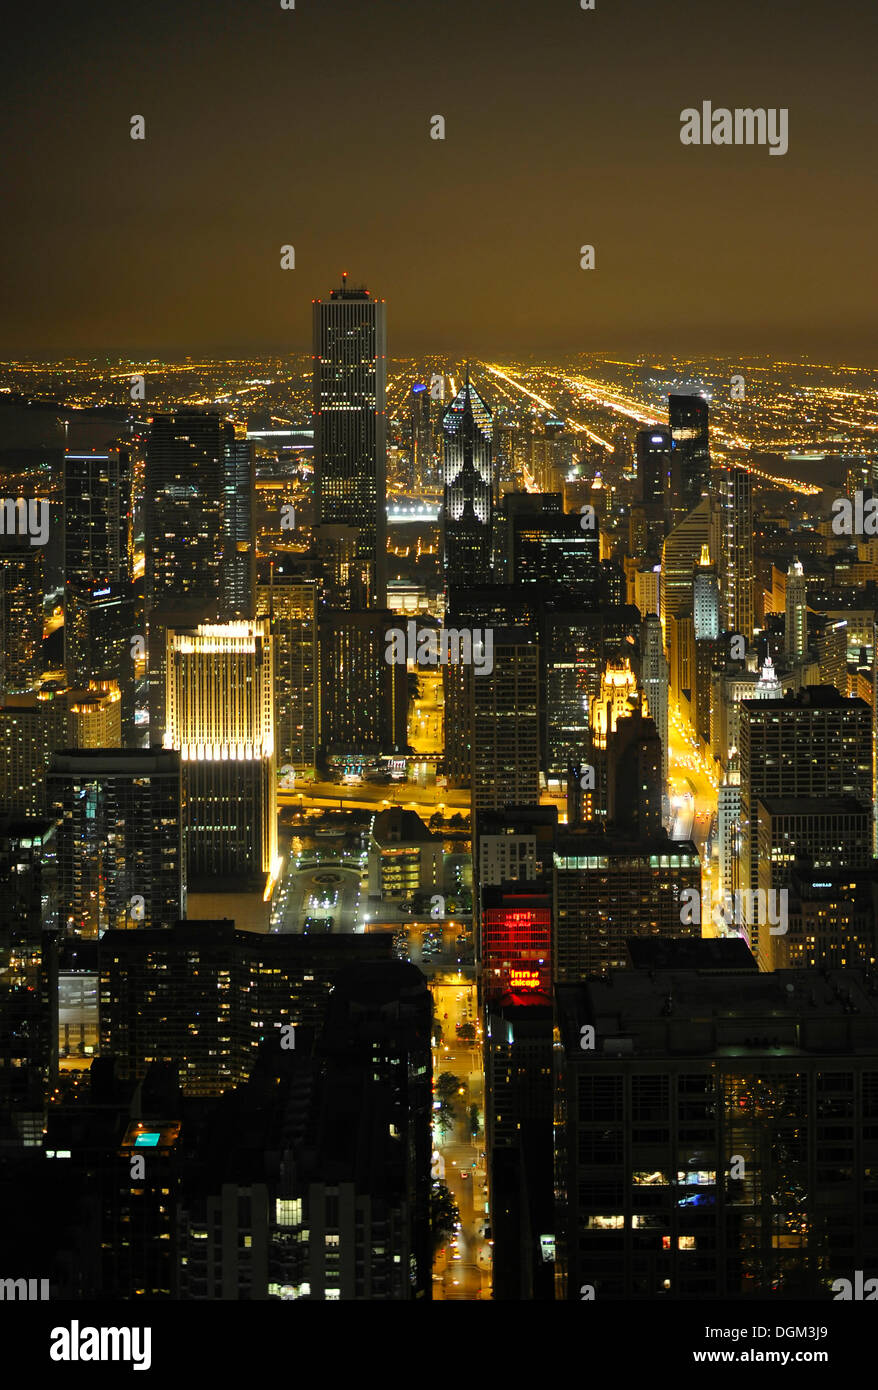 Night shot, Trump Tower, Wrigley Building, Aon Center, Two Prudential Plaza, Chicago, Illinois, United States of America, USA - Stock Image